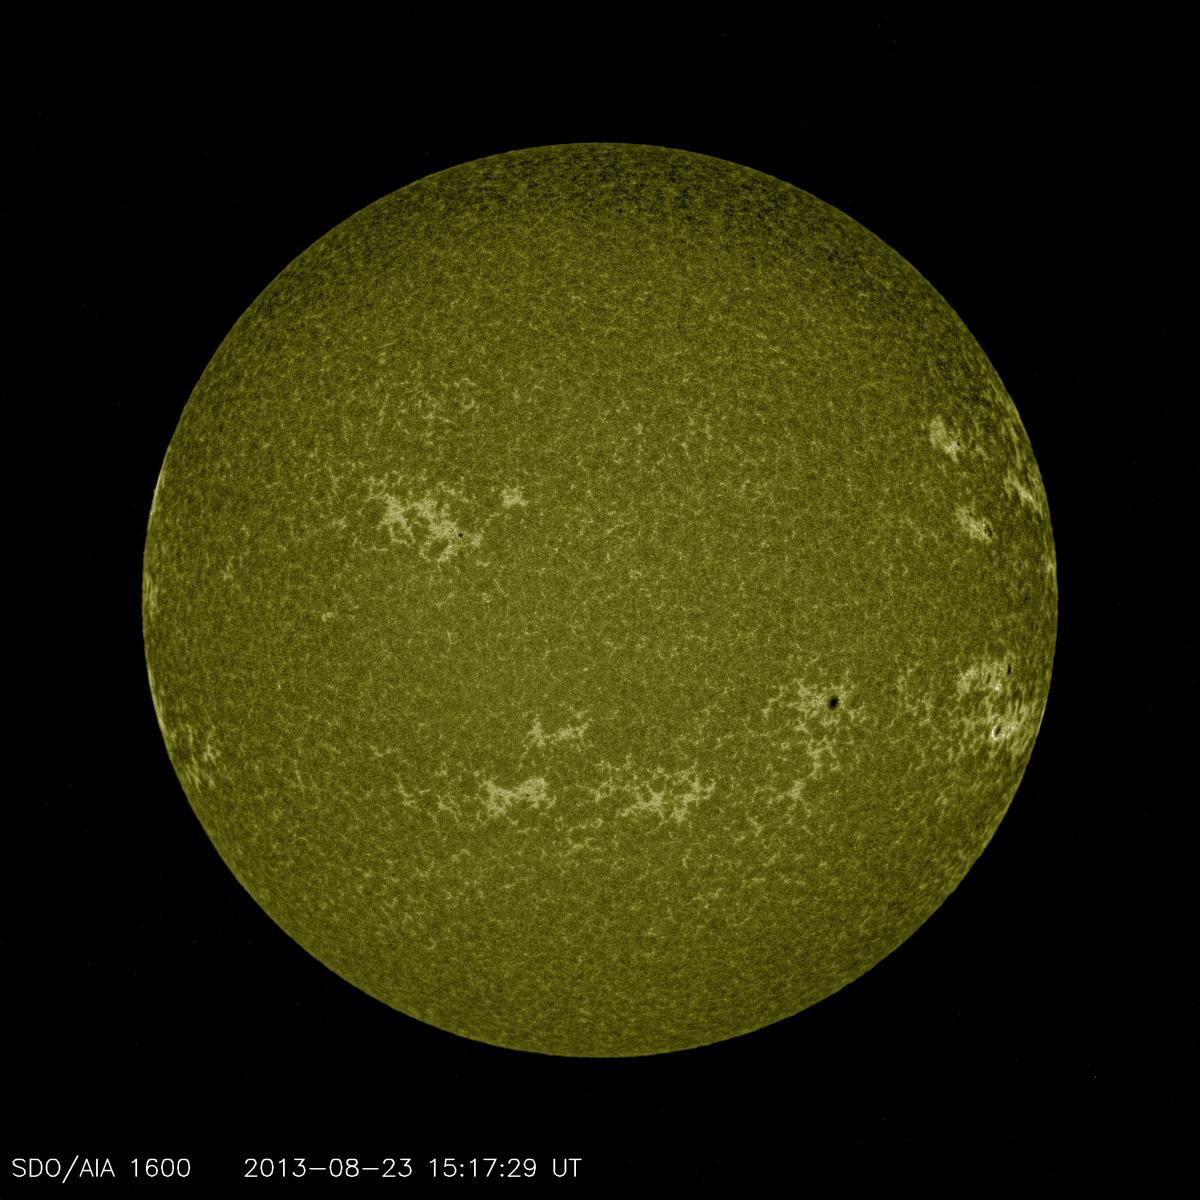 This channel often shows a weblike pattern of bright areas that highlight places where bundles of magnetic field lines are concentrated. However, small areas with a lot of field lines will appear black, usually near sunspots and active regions.